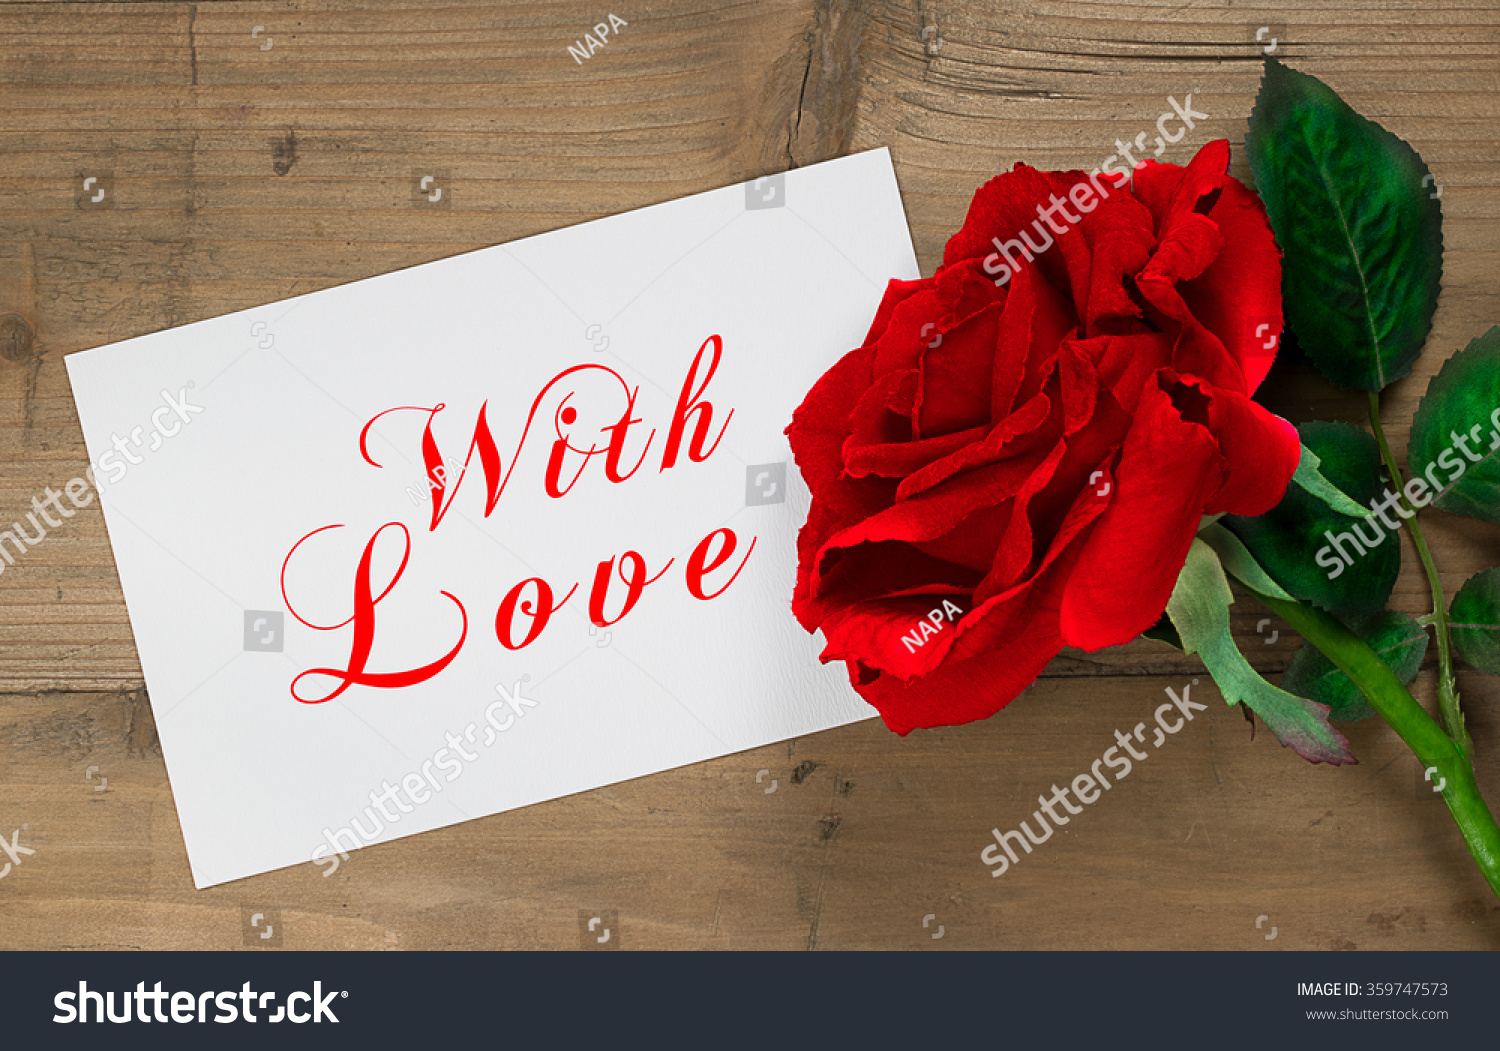 Royalty Free Love Message Text Card With Red Rose On 359747573